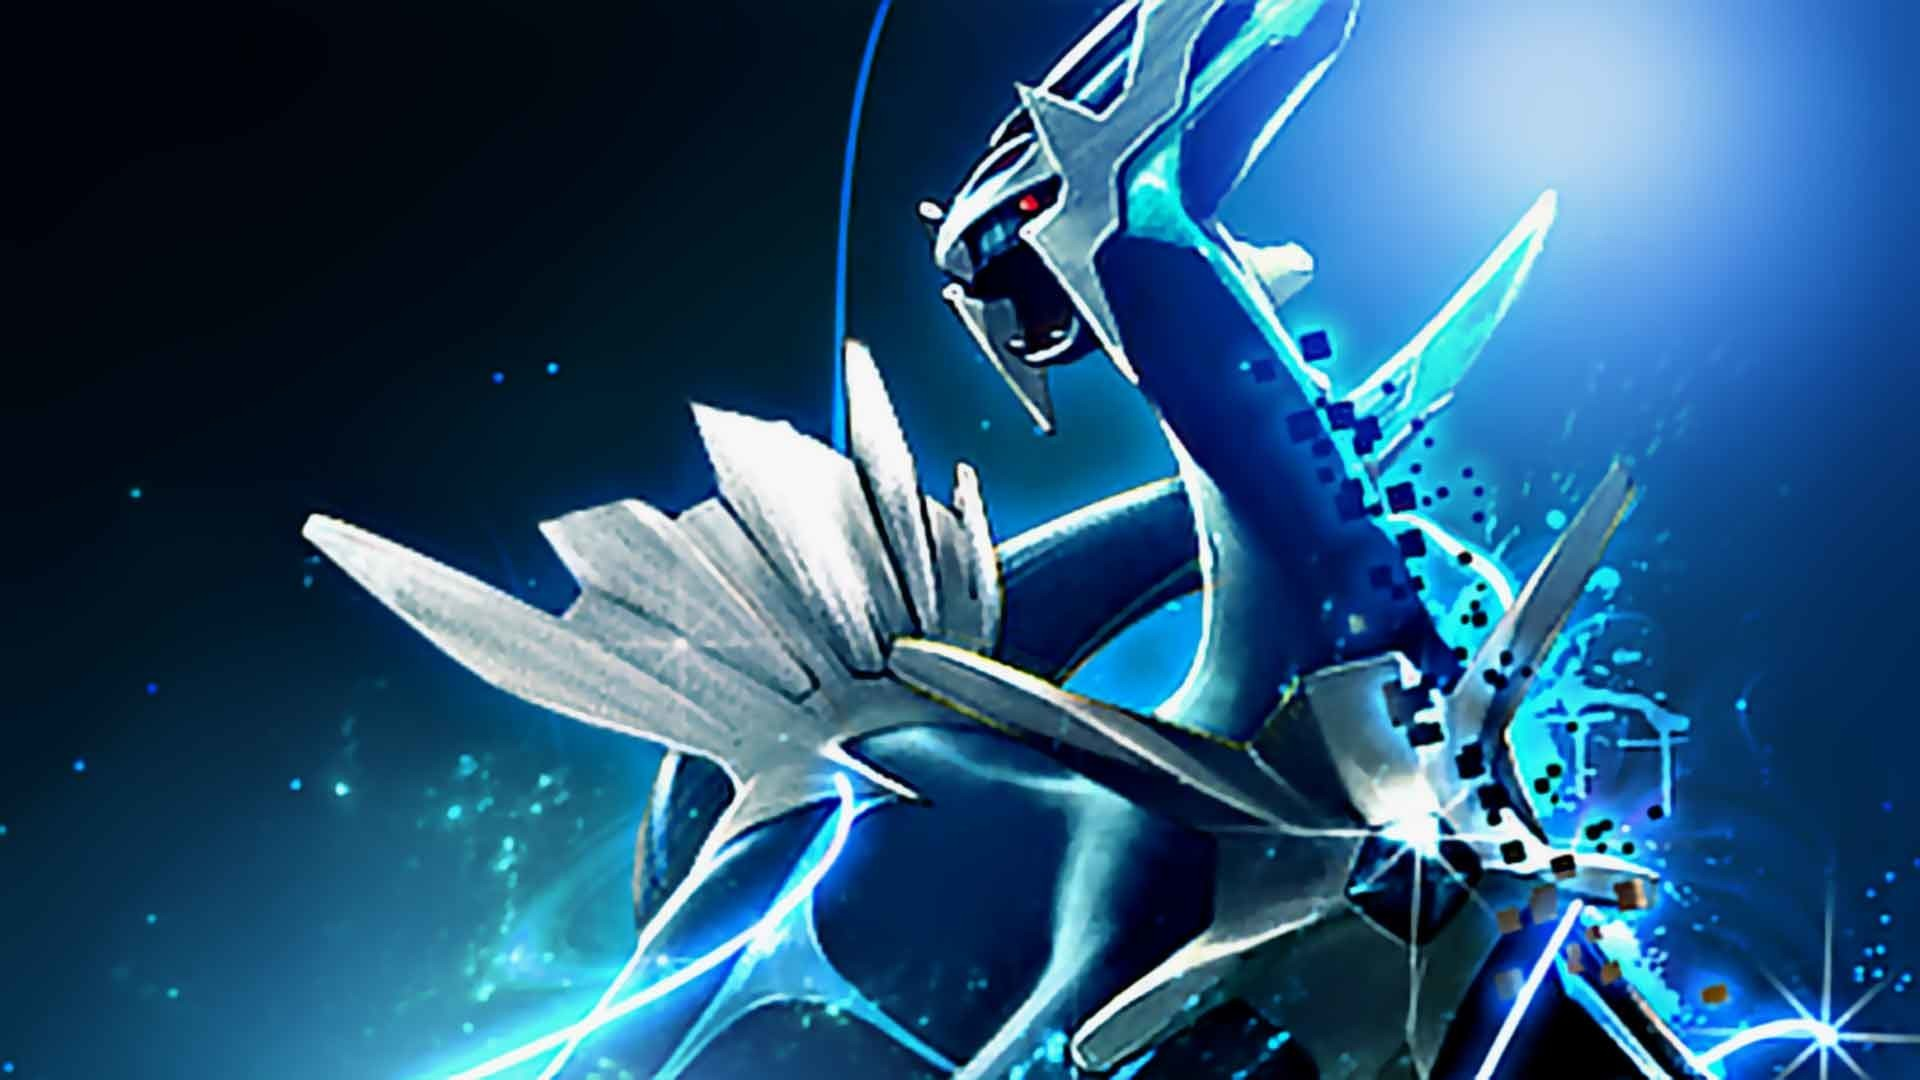 Res: 1920x1080, Kyogre Wallpaper by GameMaster0015 Kyogre Wallpaper by GameMaster0015  2048x1152